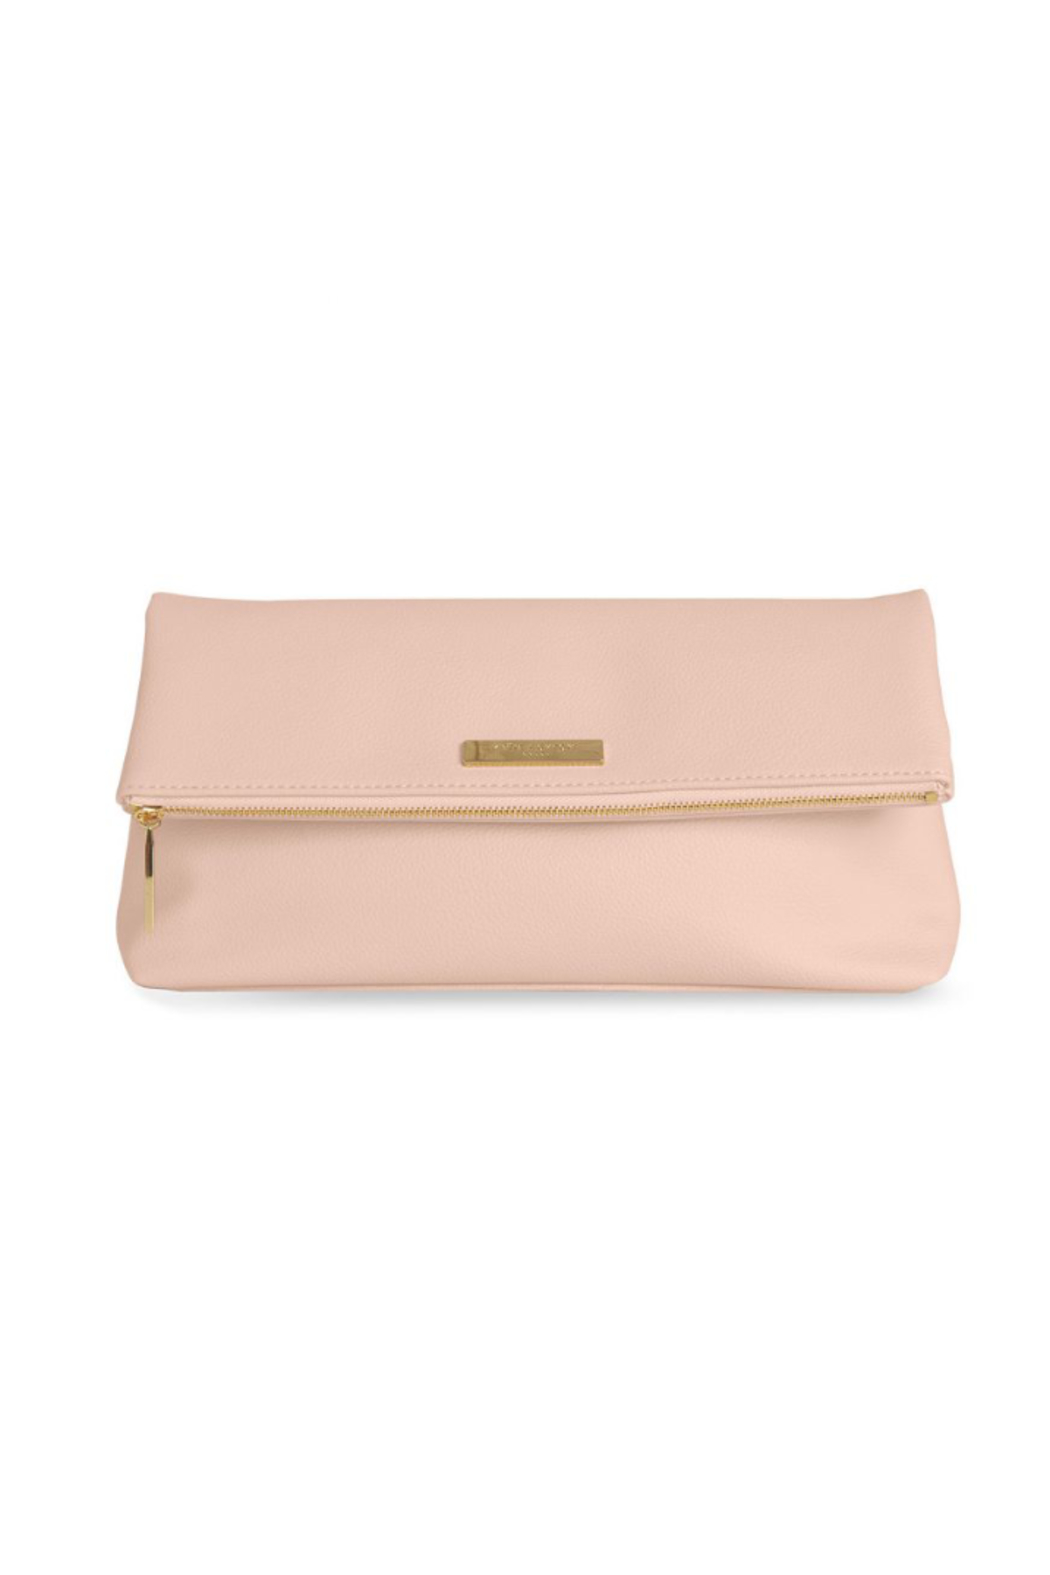 Katie Loxton Alise Fold Over Clutch - Main Image